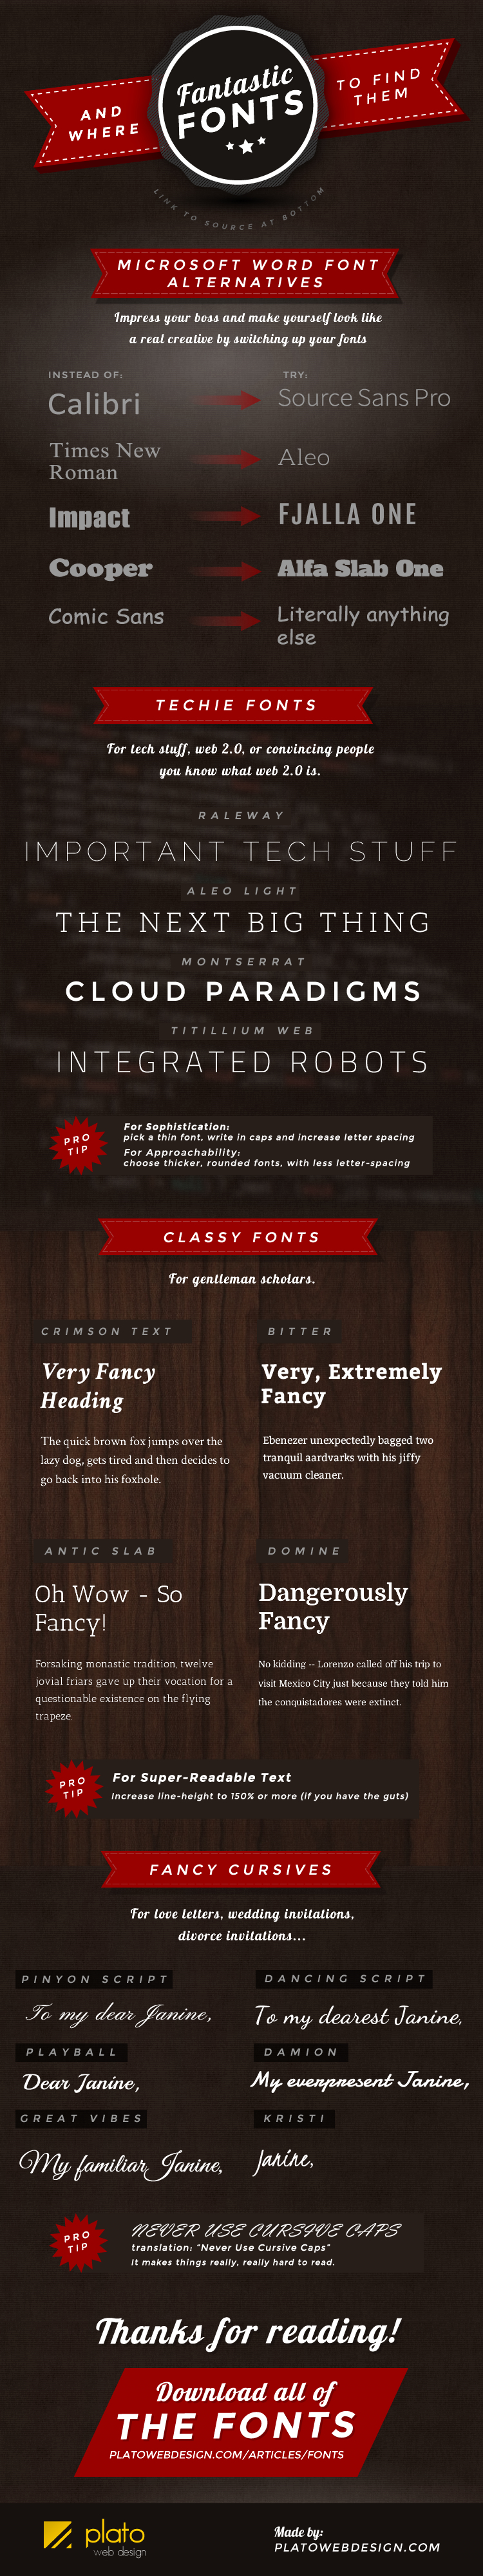 having trouble reading the infographic click on the image to make it larger - Best Resume Font